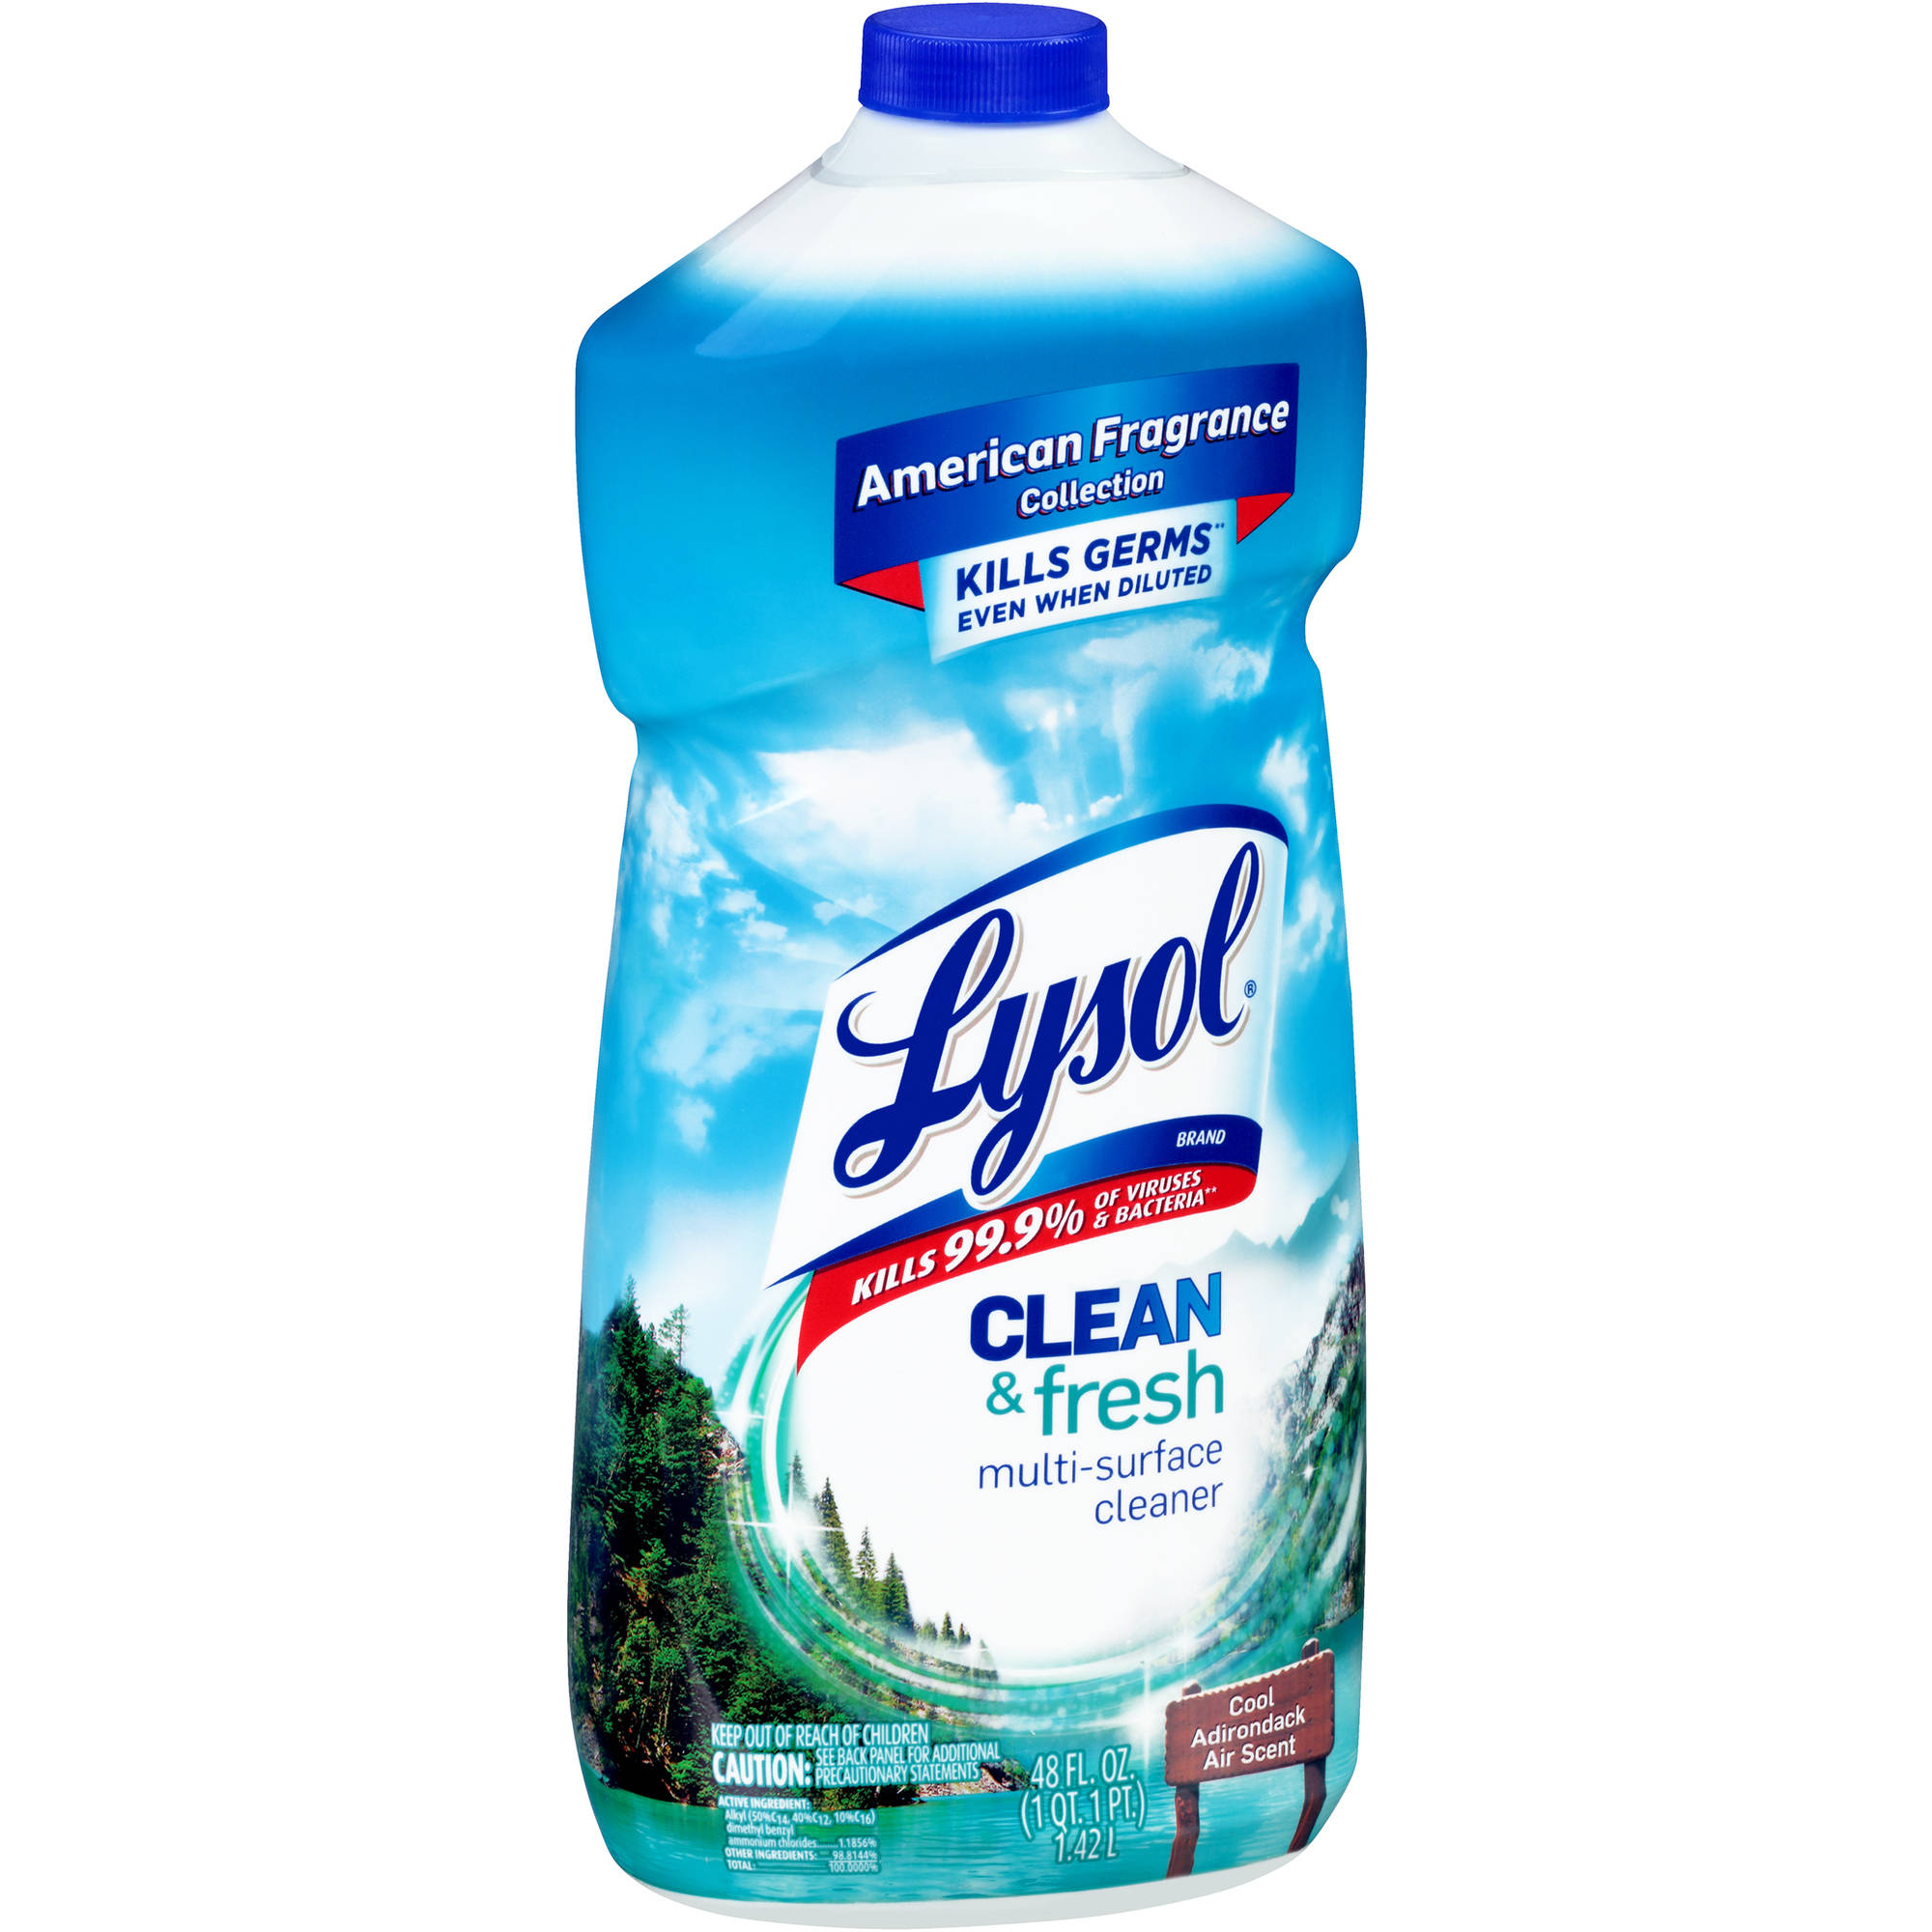 Lysol Clean & Fresh Multi-Surface Cleaner, 48 fl oz